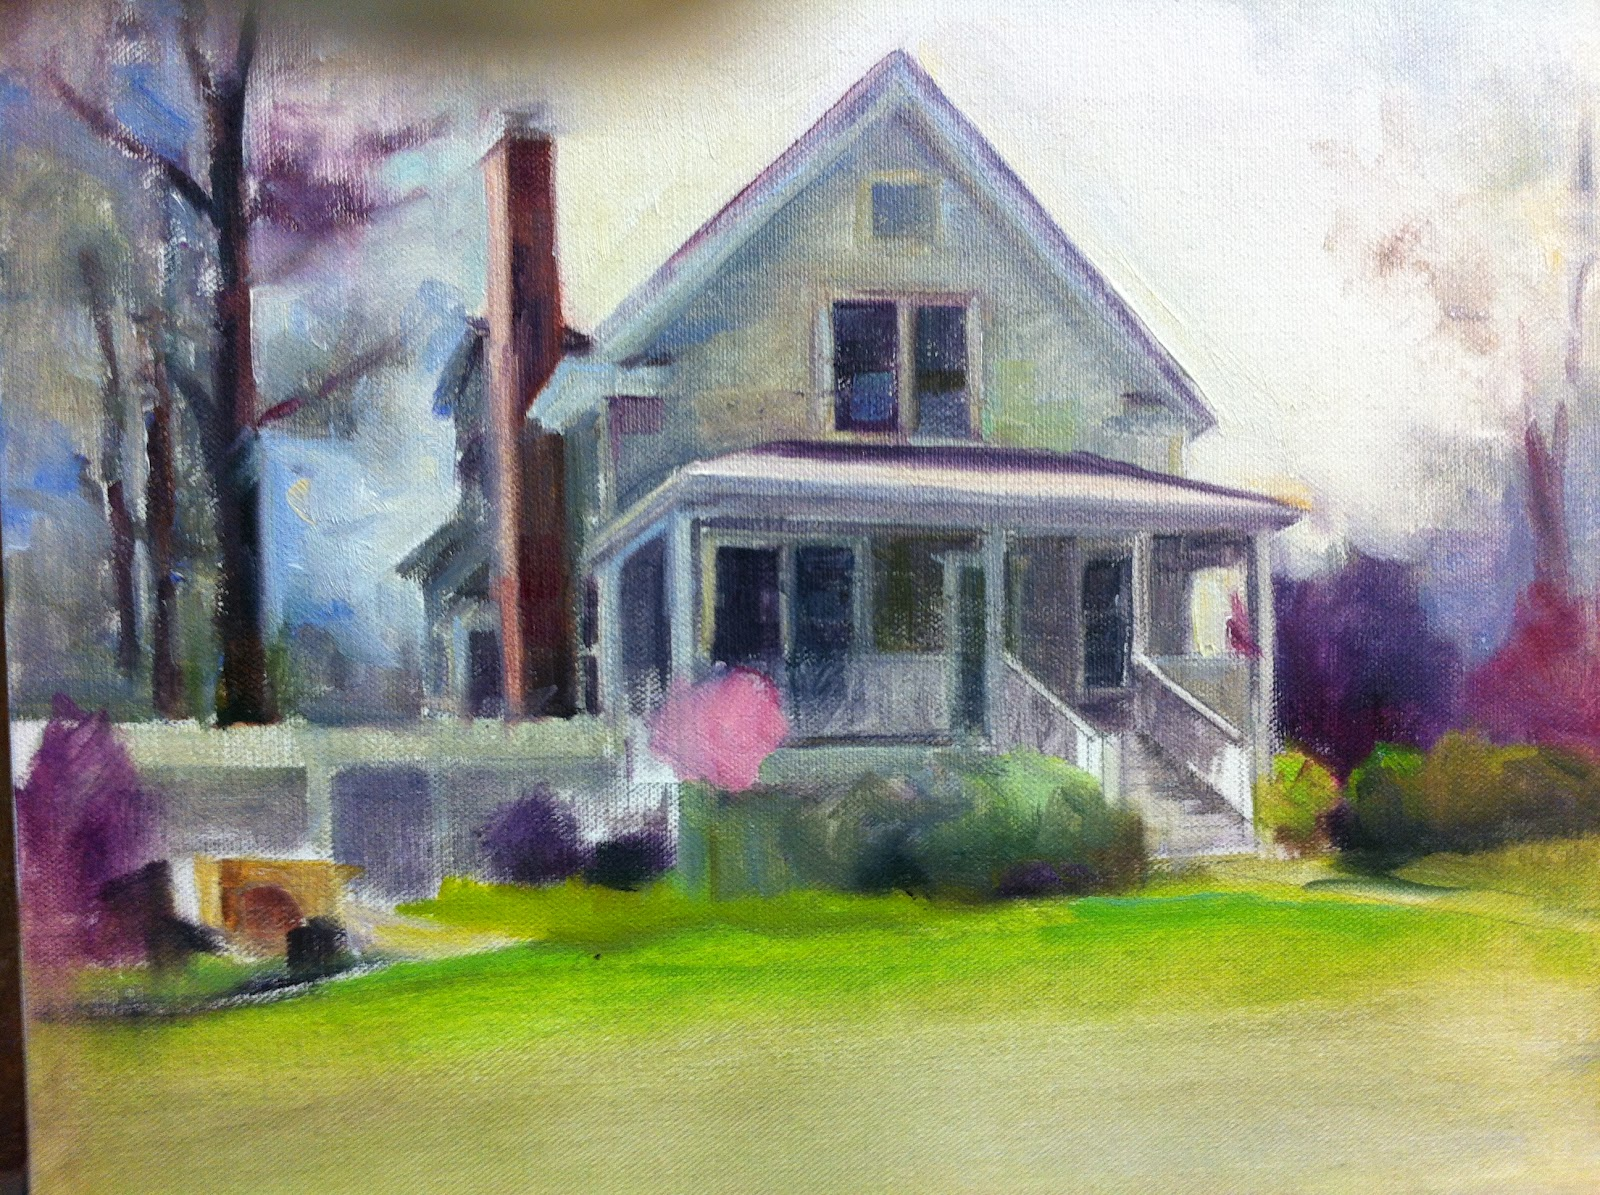 Home sweet home painting - I Decided To Change The Tree Line On The Right Side Of The Painting In The Reference Photos You Can See Another House On The Right Side Which I Did Not